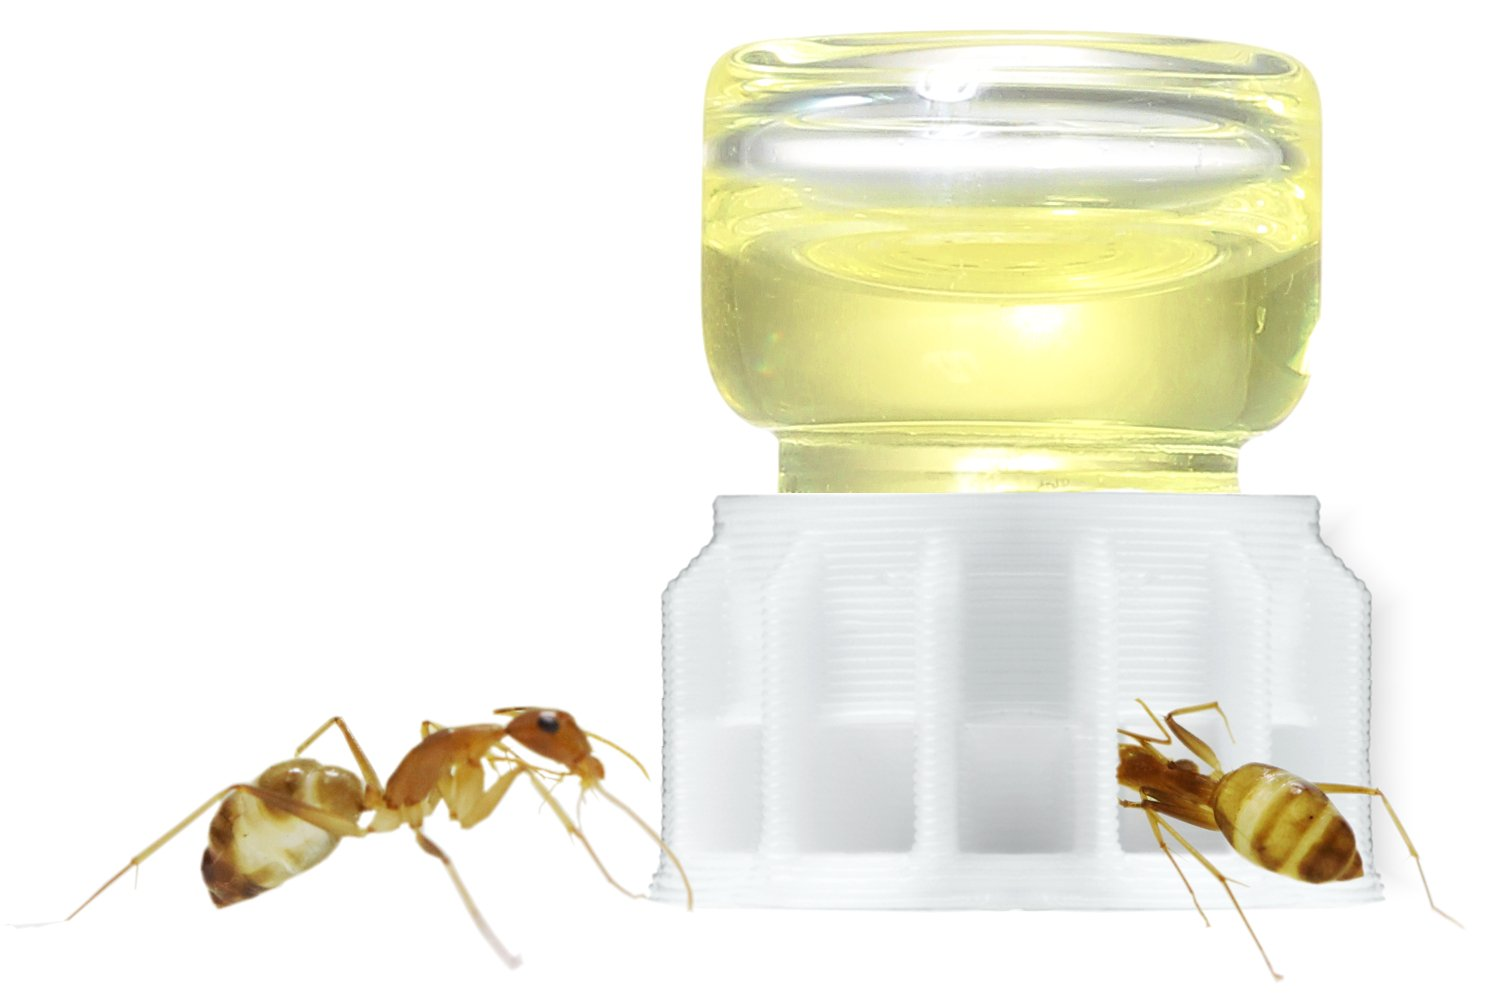 byFormica Ant Products Liquid Feeder Micro Feeder for Ants: for Water, Sugar Water, Or Ant Nectar (1 ml (Qty 17))